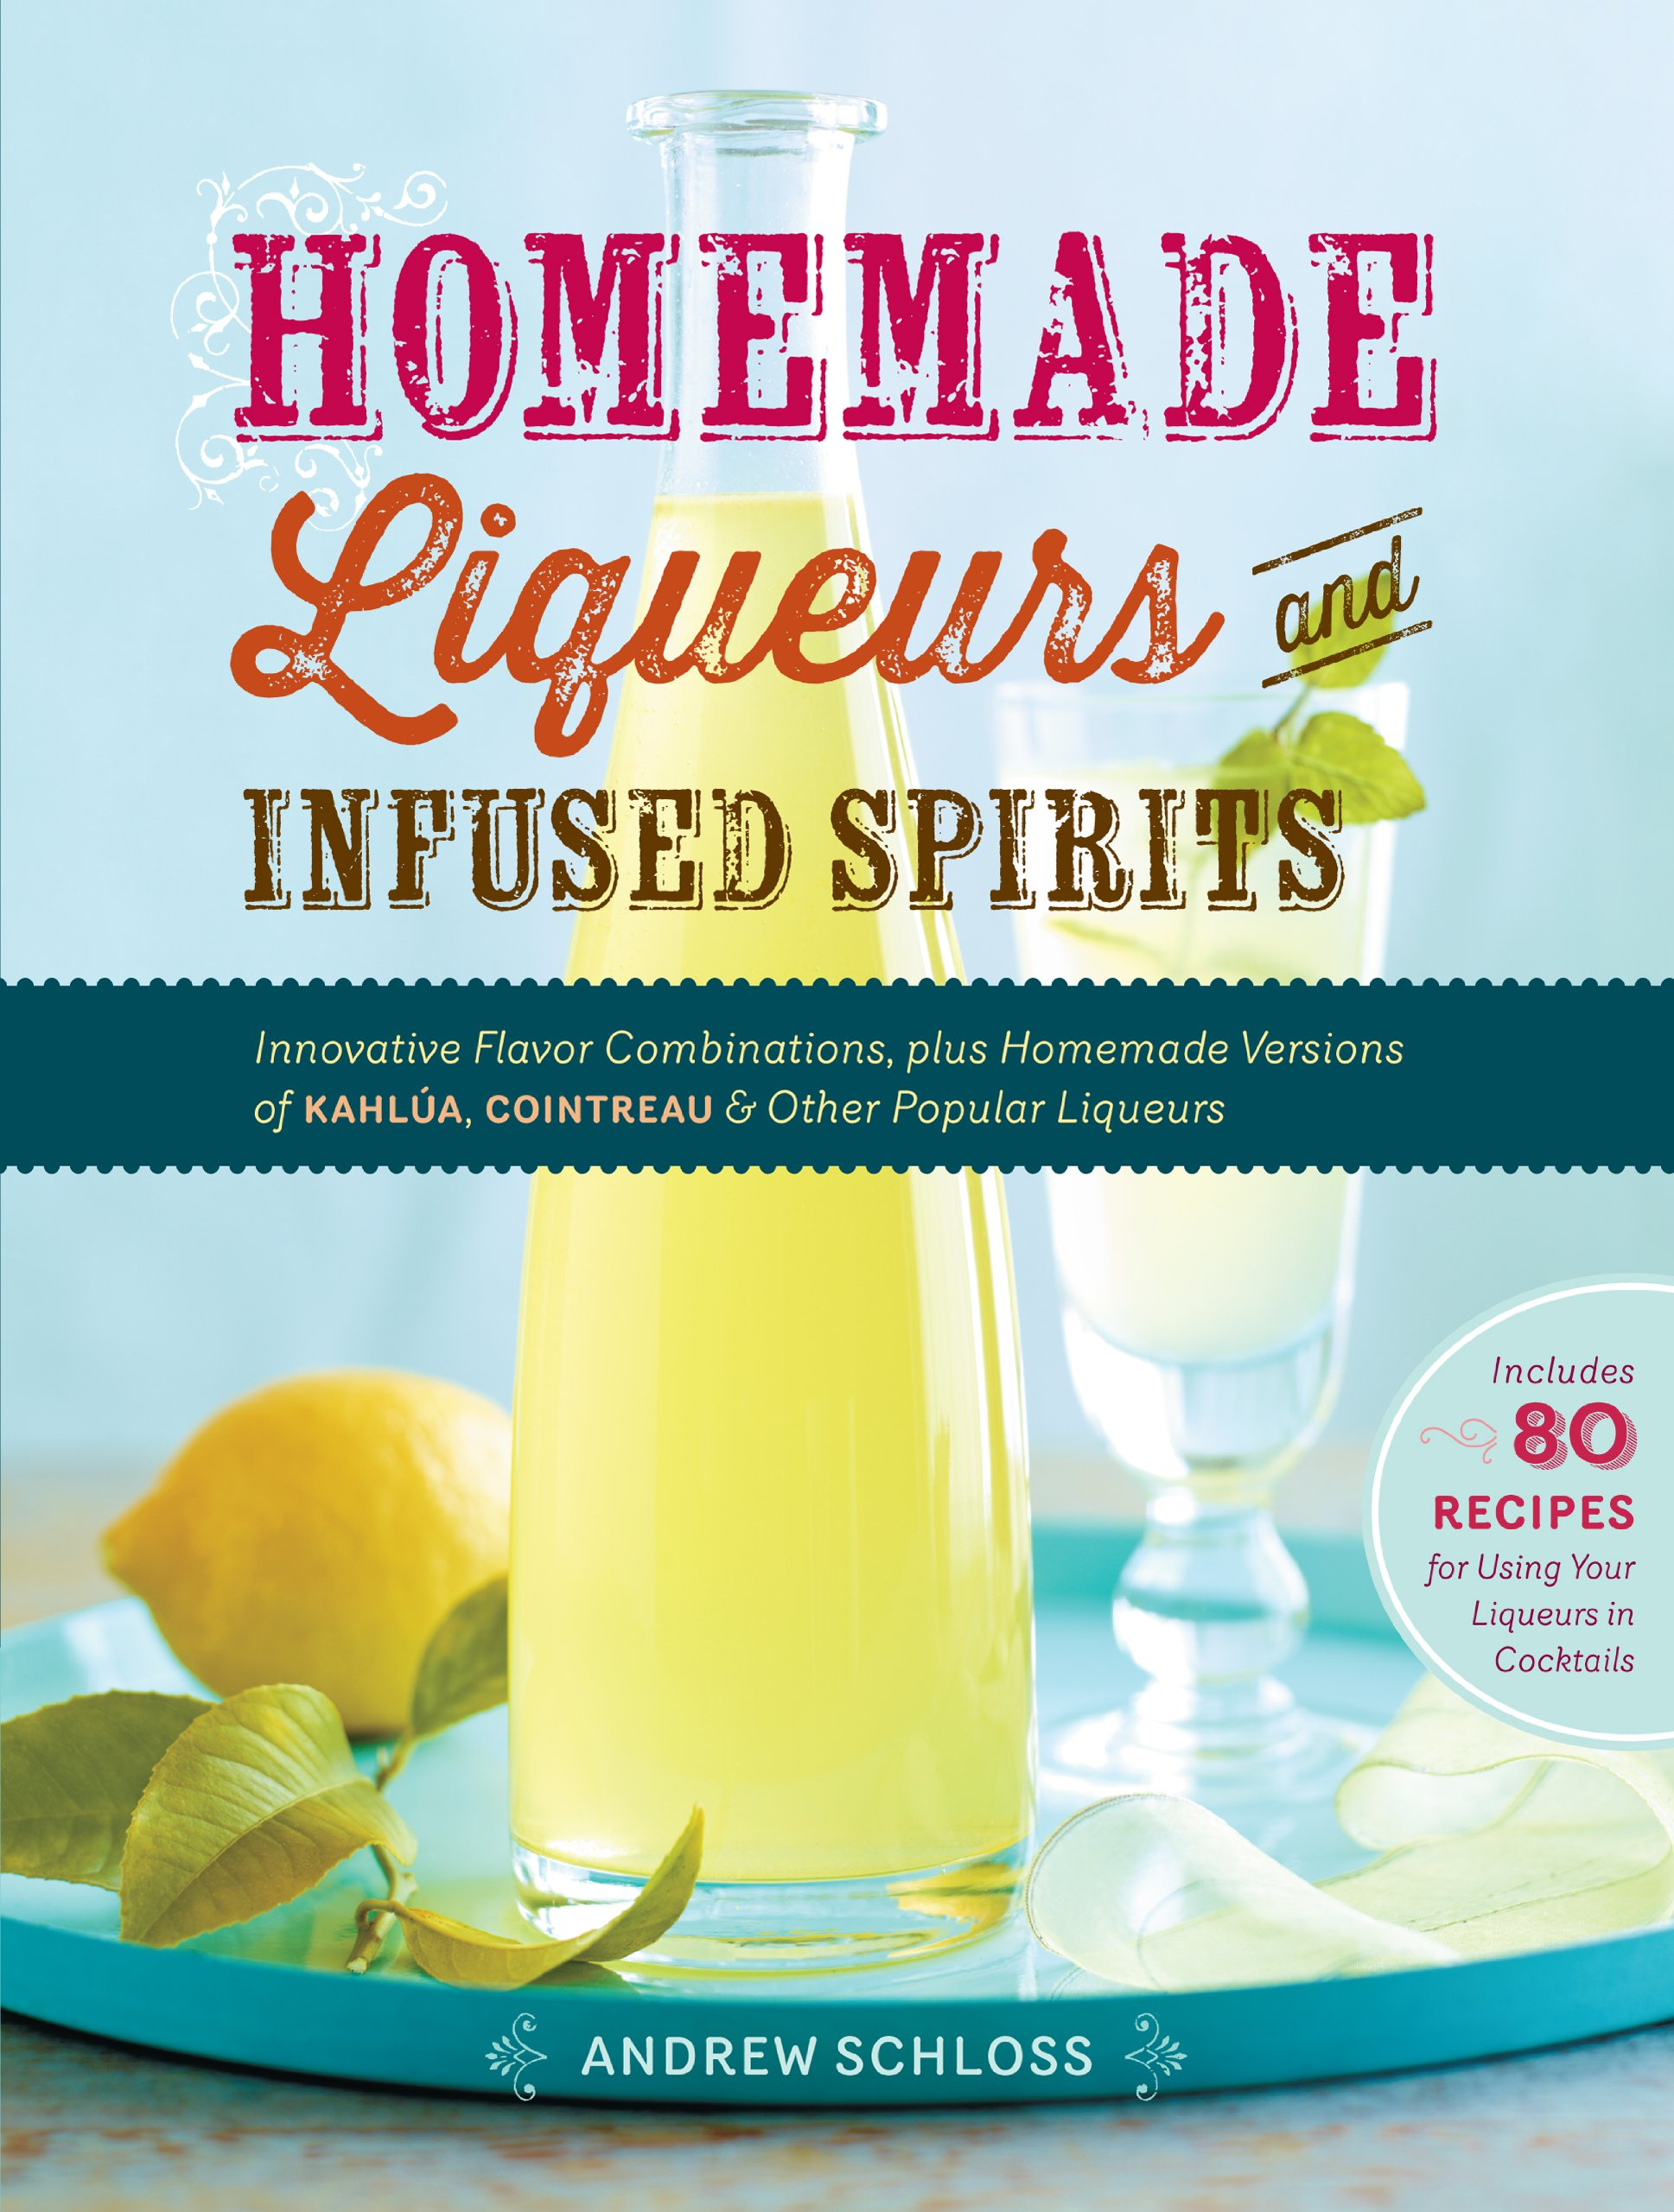 Homemade Liqueurs And Infused Spirits  Innovative Flavor Combinations Plus Homemade Versions Of Limoncello Triple Sec And Other Popular Liqueurs